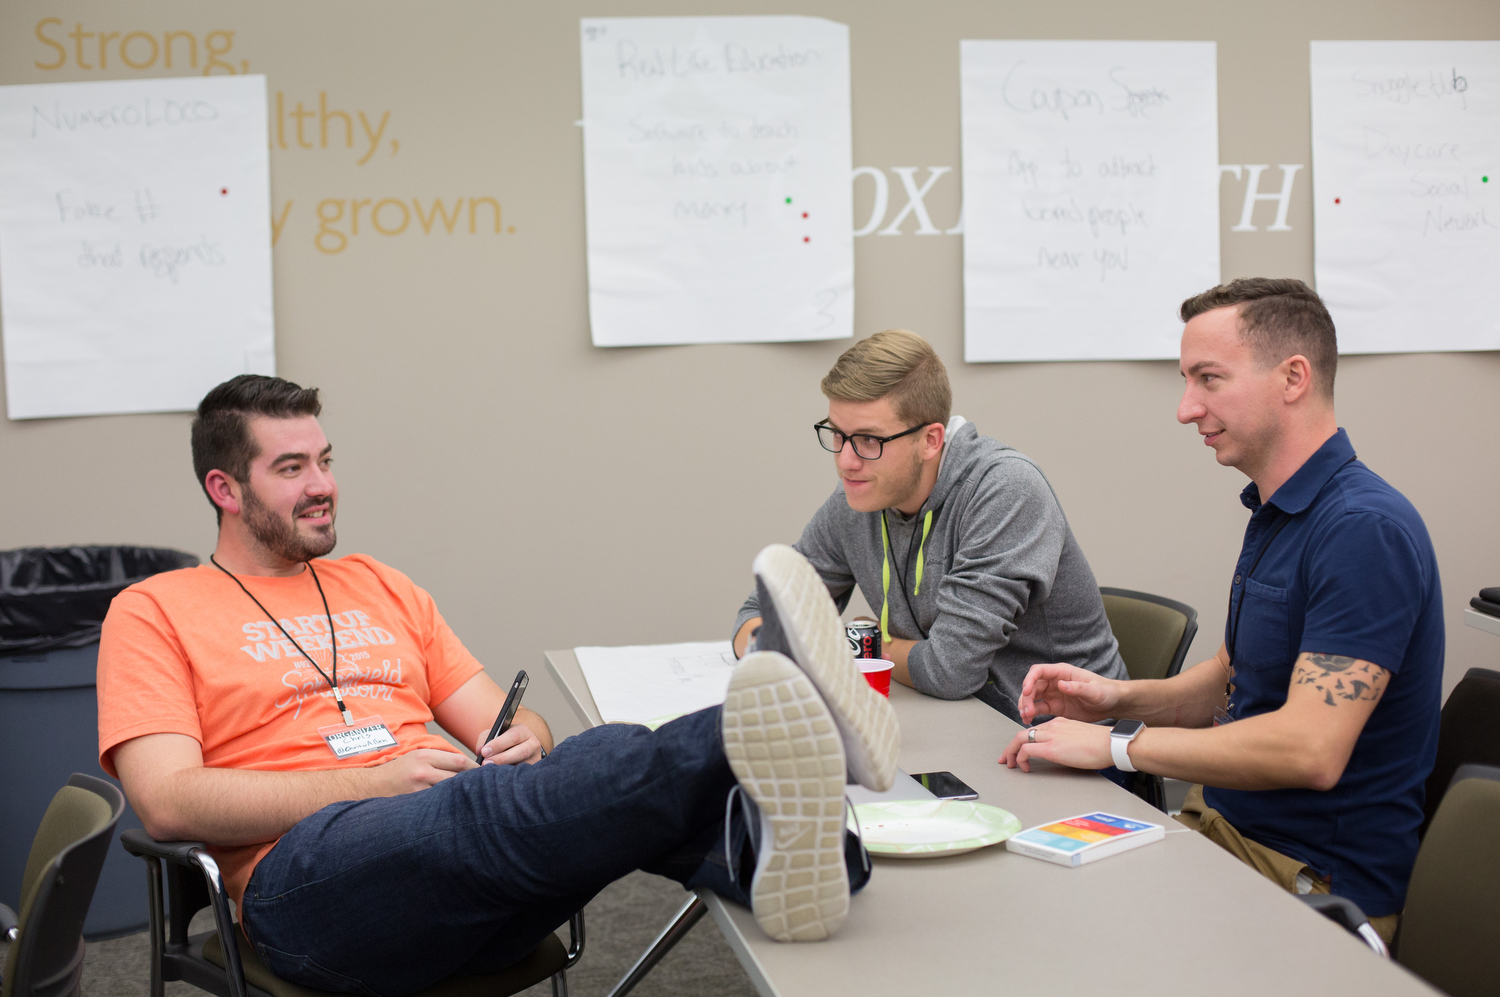 Chris Allen, left, a Startup Weekend Springfield organizer, talks with Tim Cook and Dan Seawel, right, during the competition at the eFactory in Springfield, Mo. on Nov. 20, 2015. Photos by Brad Zweerink